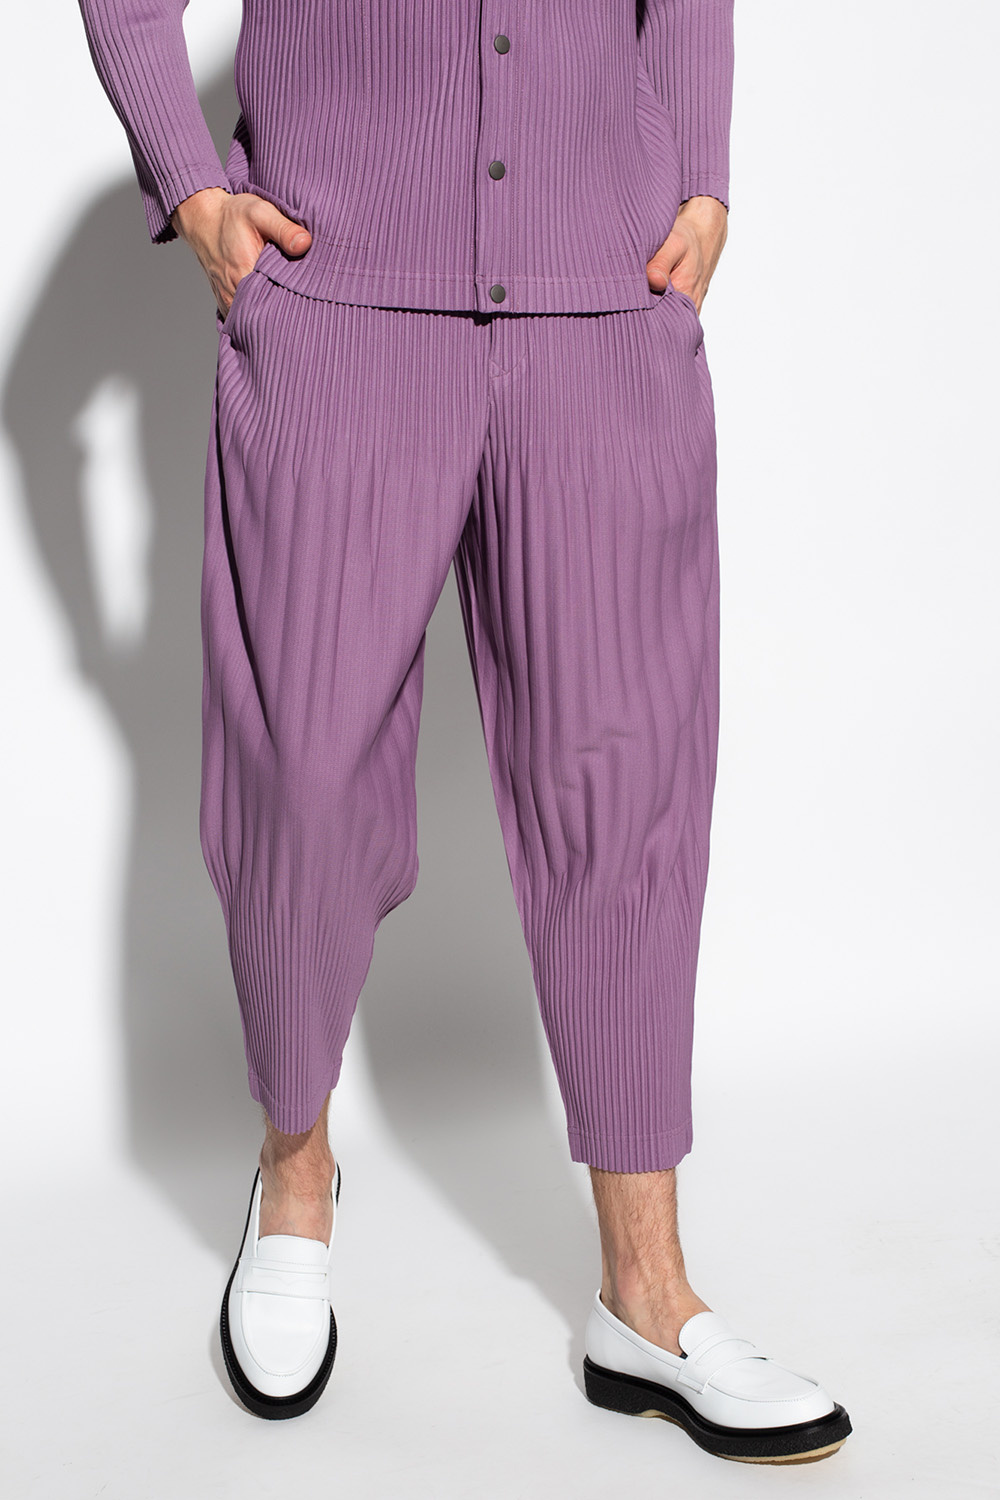 Issey Miyake Homme Plisse Pleated trousers